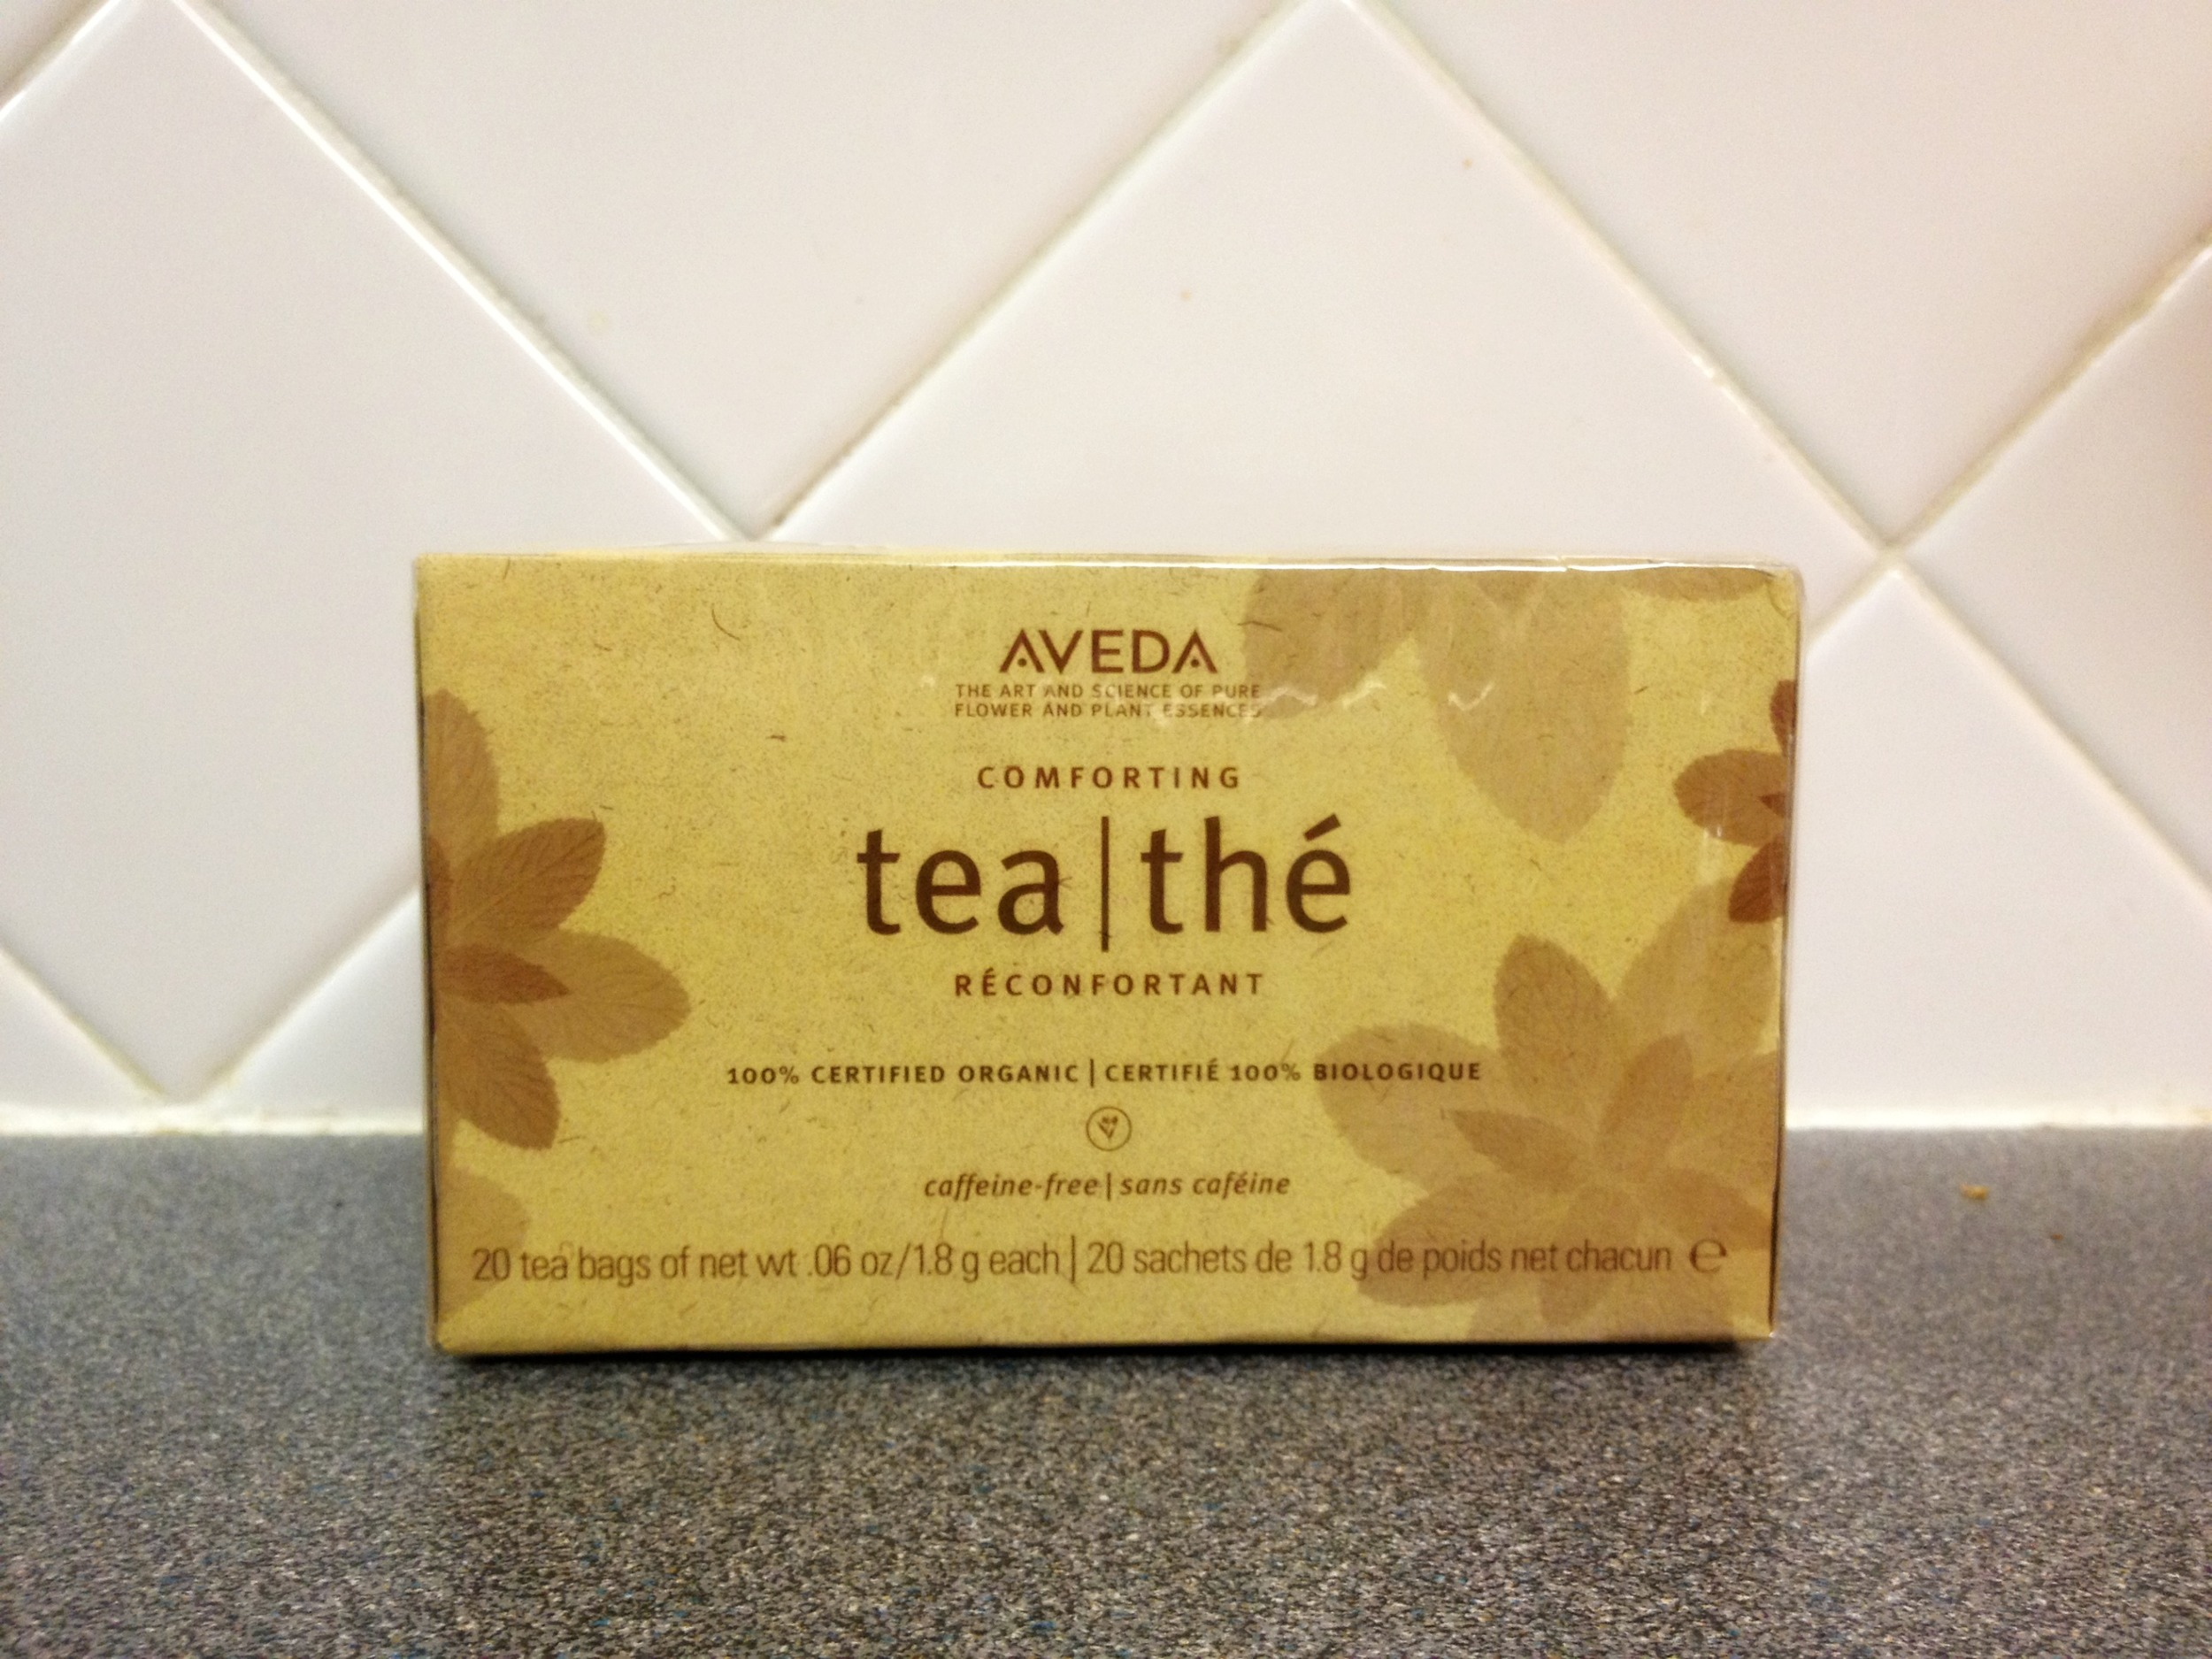 town at guru the comforter tea quick aveda center img pampered towson comforting get